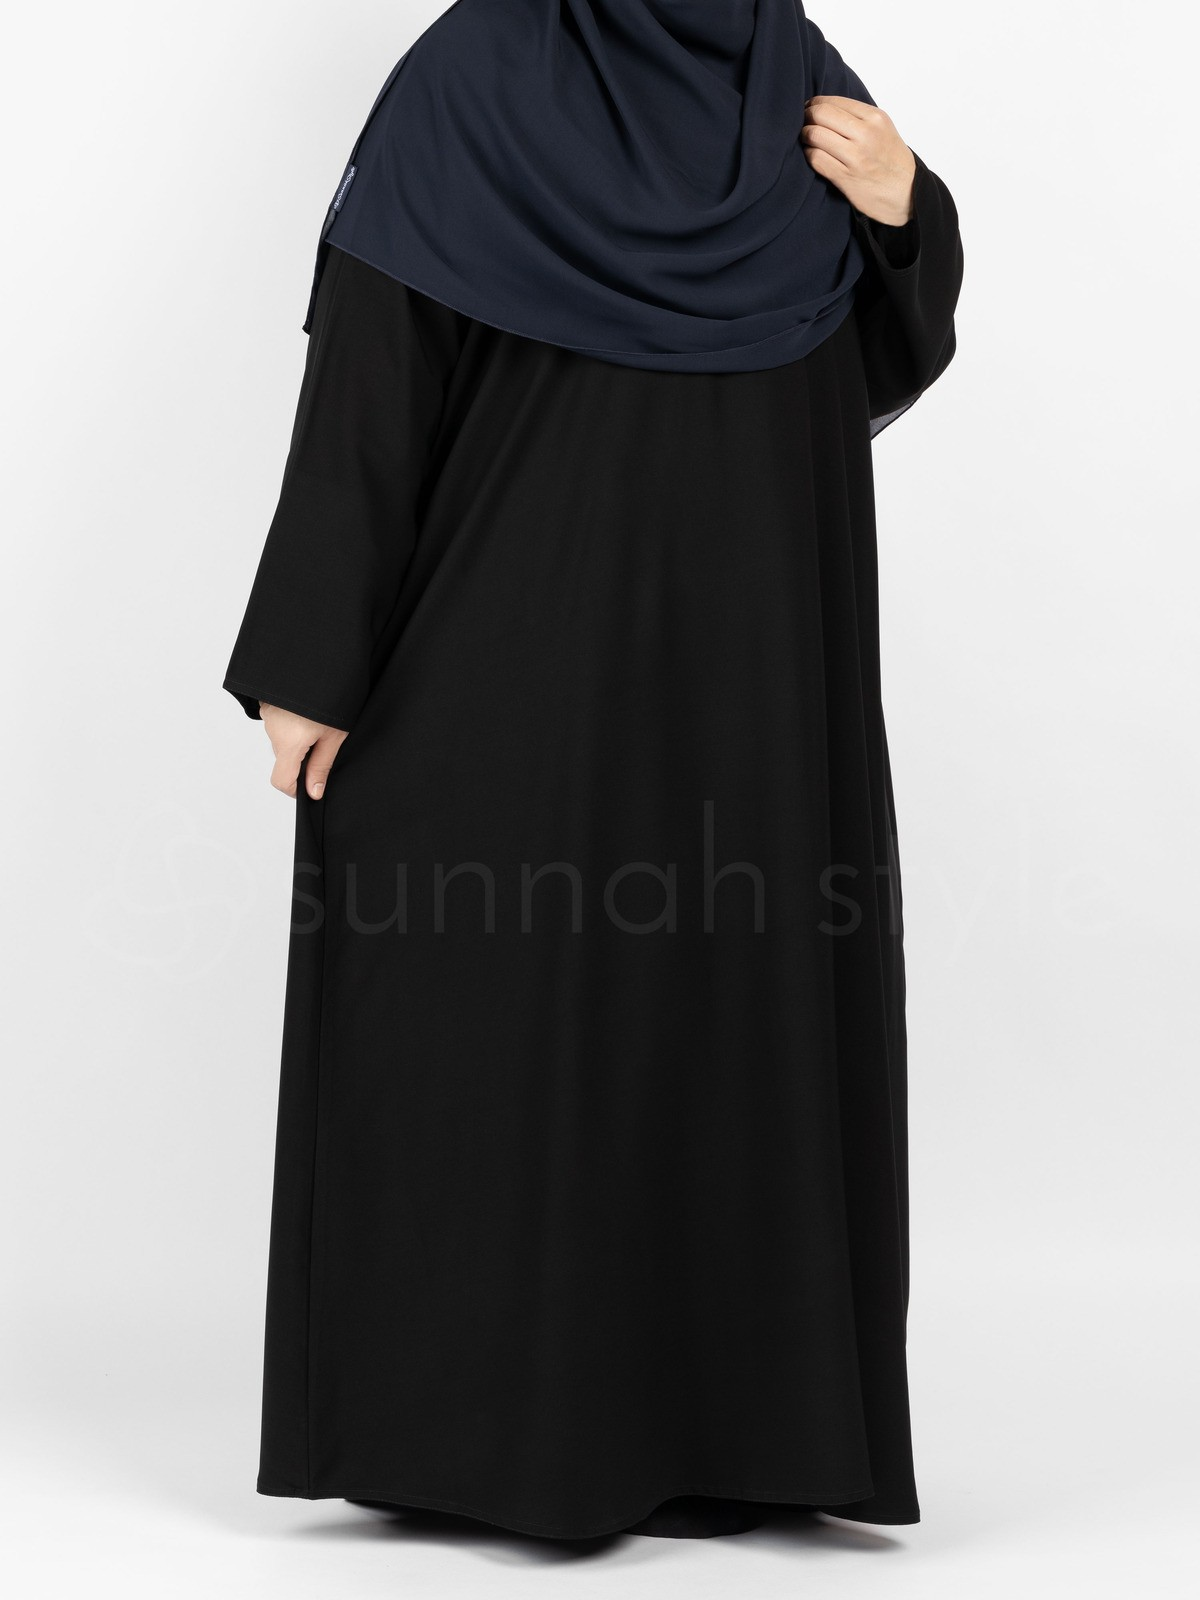 Sunnah Style - Plain Closed Abaya - PLUS (Black)